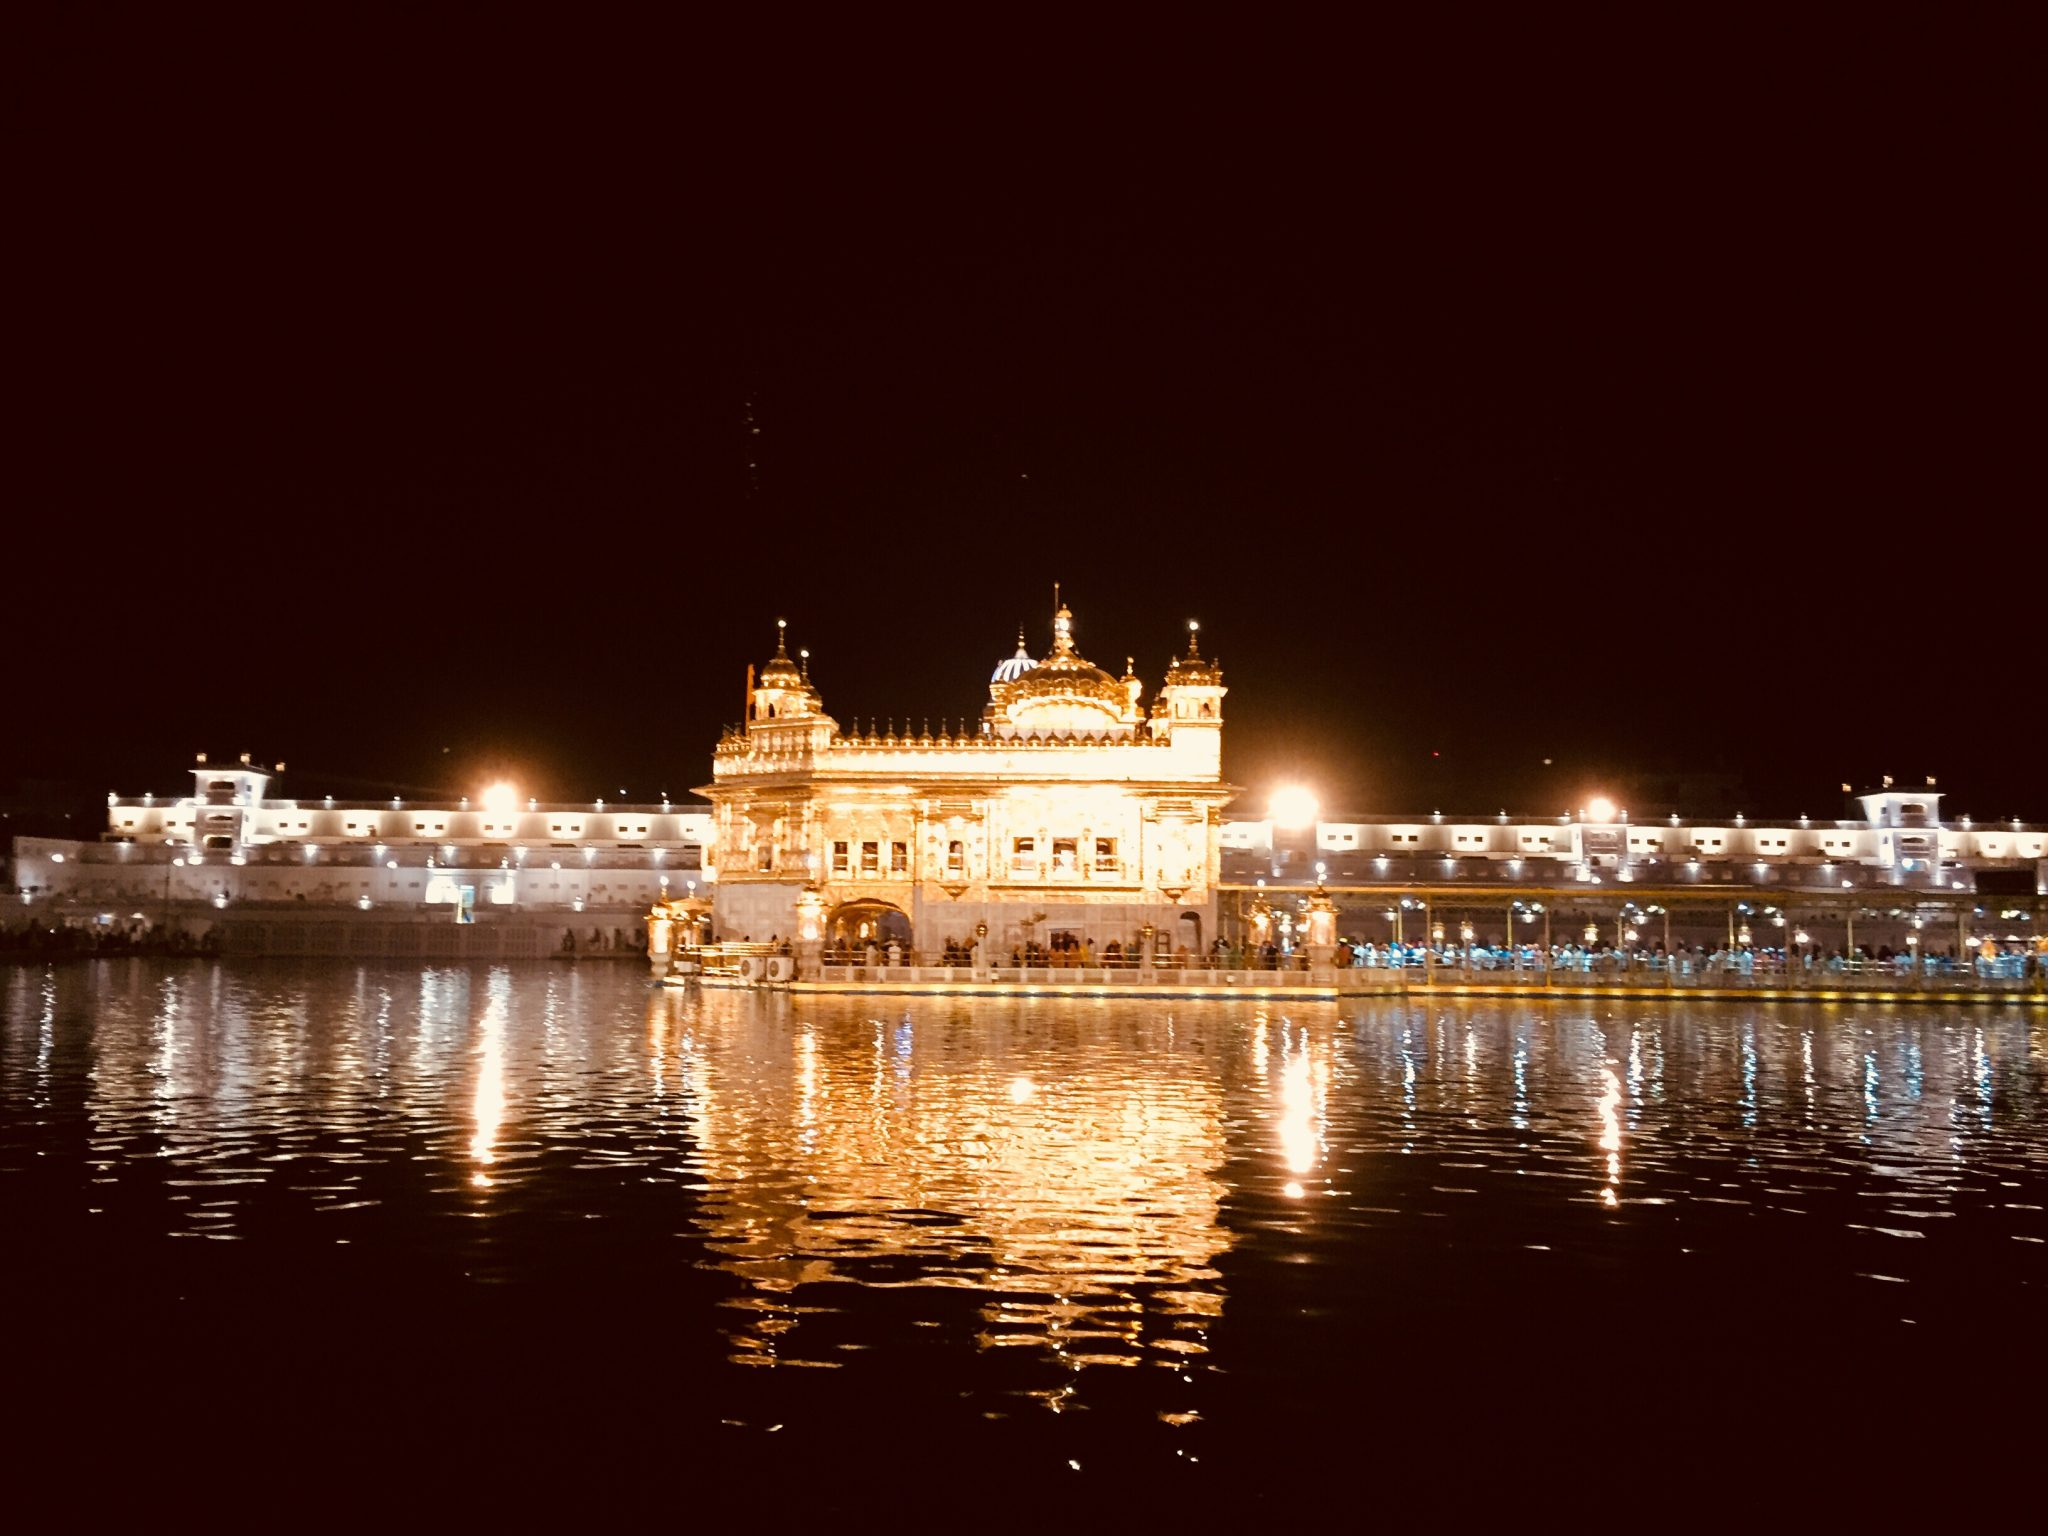 My experience of visiting Golden Temple Amritsar